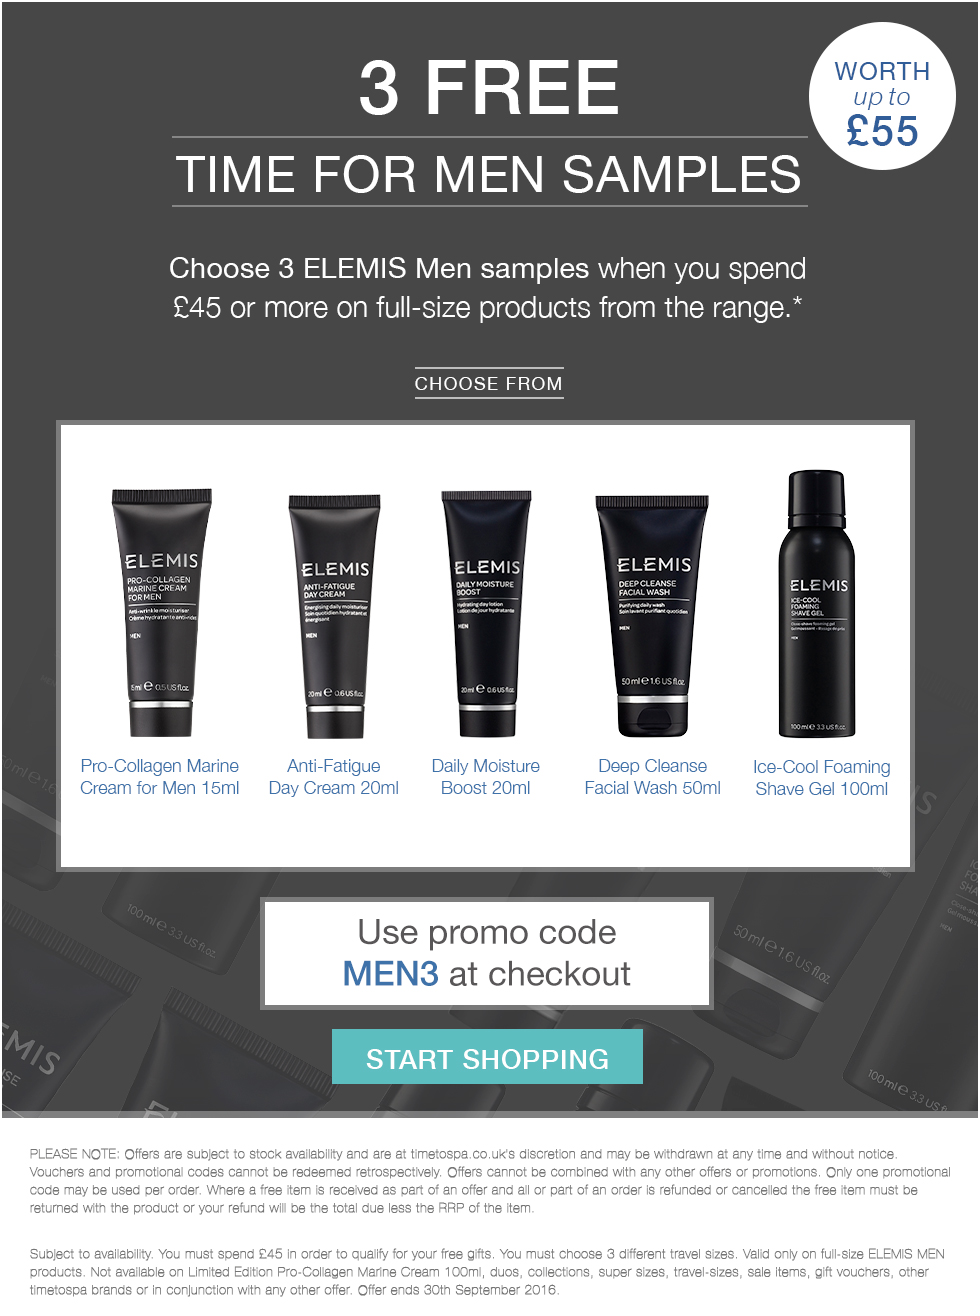 3 FREE ELEMIS Men Travel Sizes - Worth Up To £55